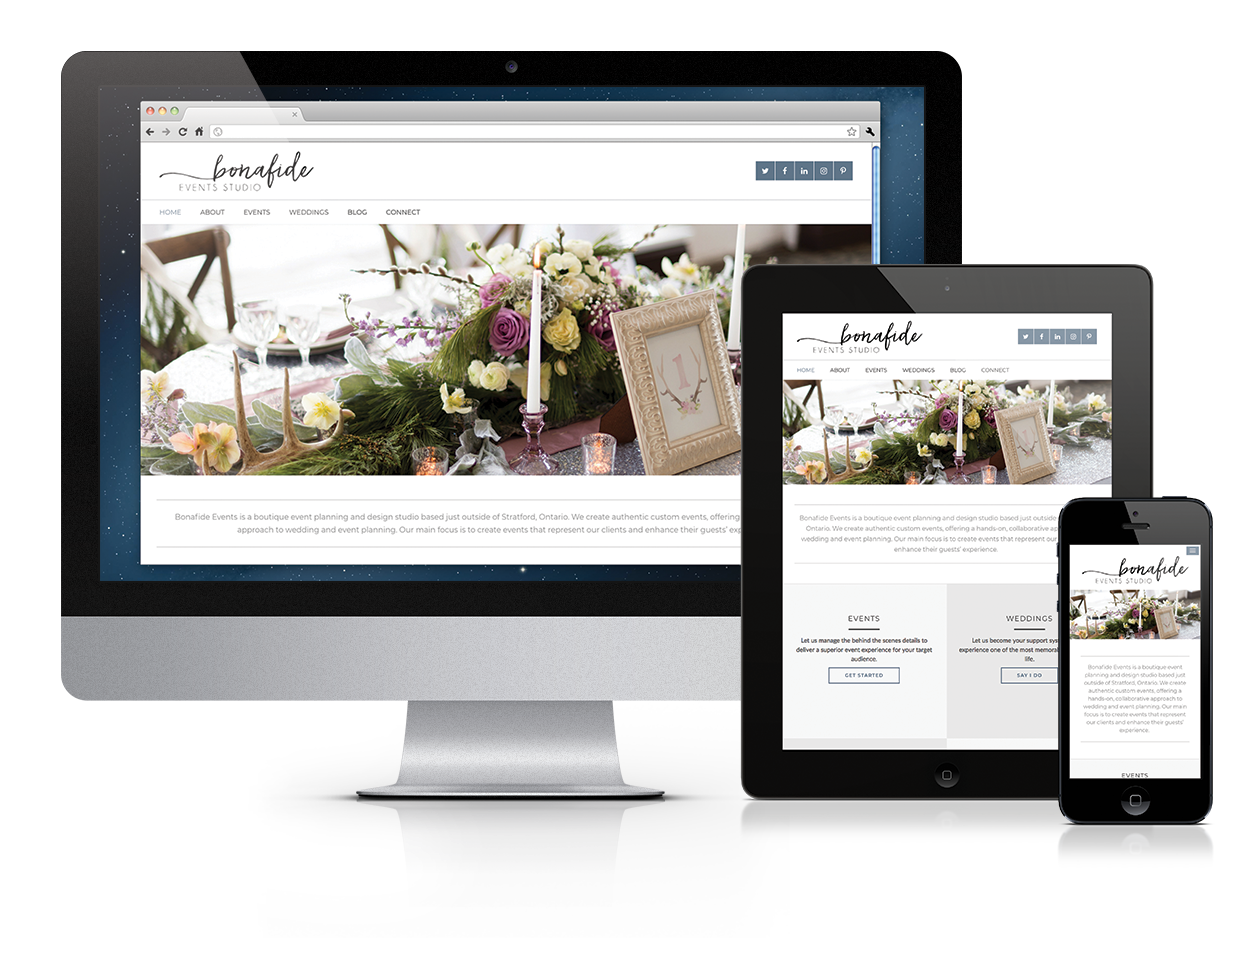 Bonafide Events Studio, Smarter Website Design, Niagara